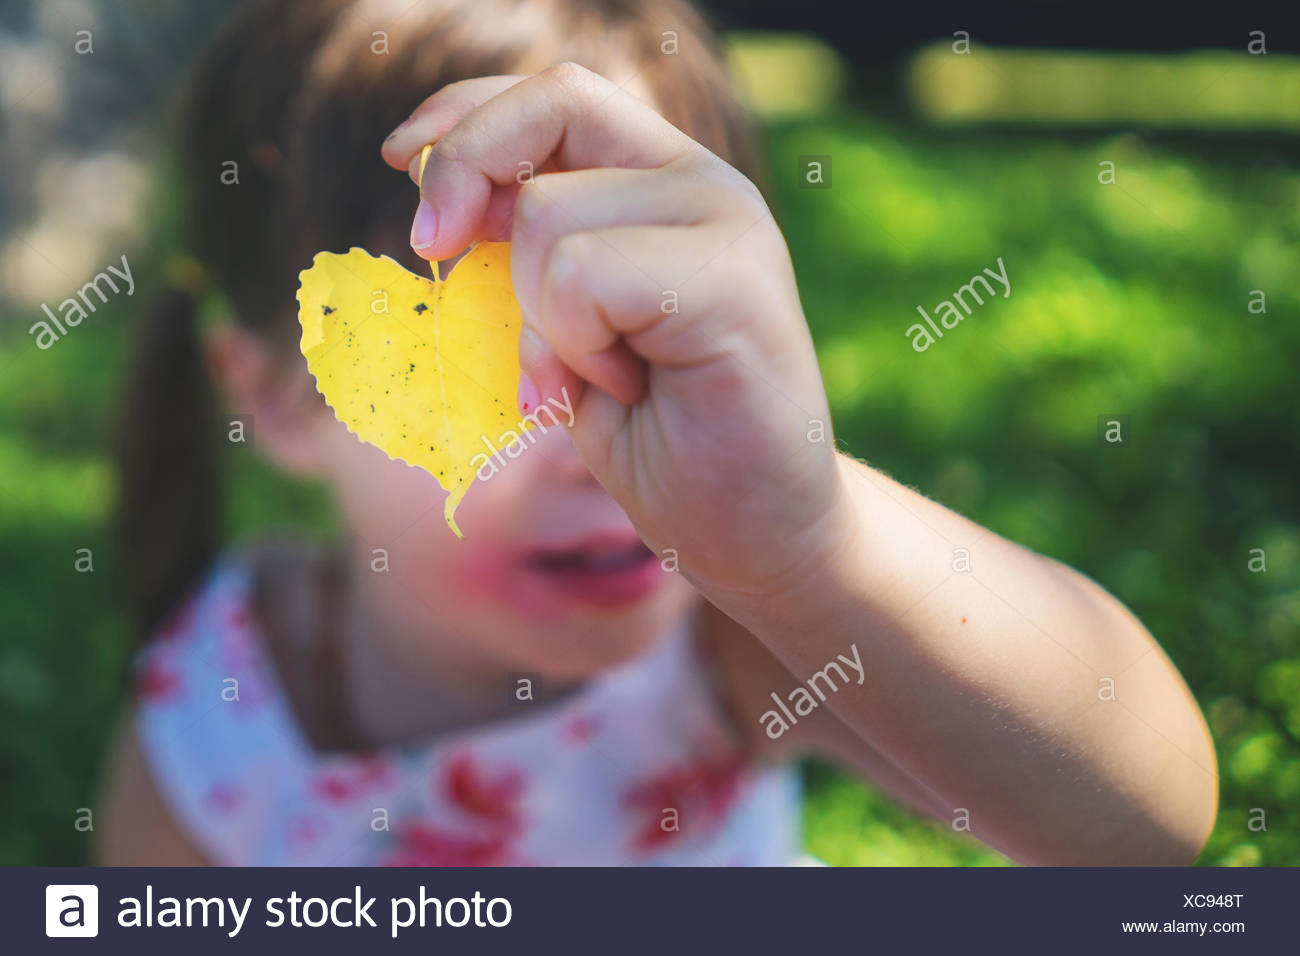 Heart Shaped Leaf In Hand Stock Photos & Heart Shaped Leaf In Hand ...